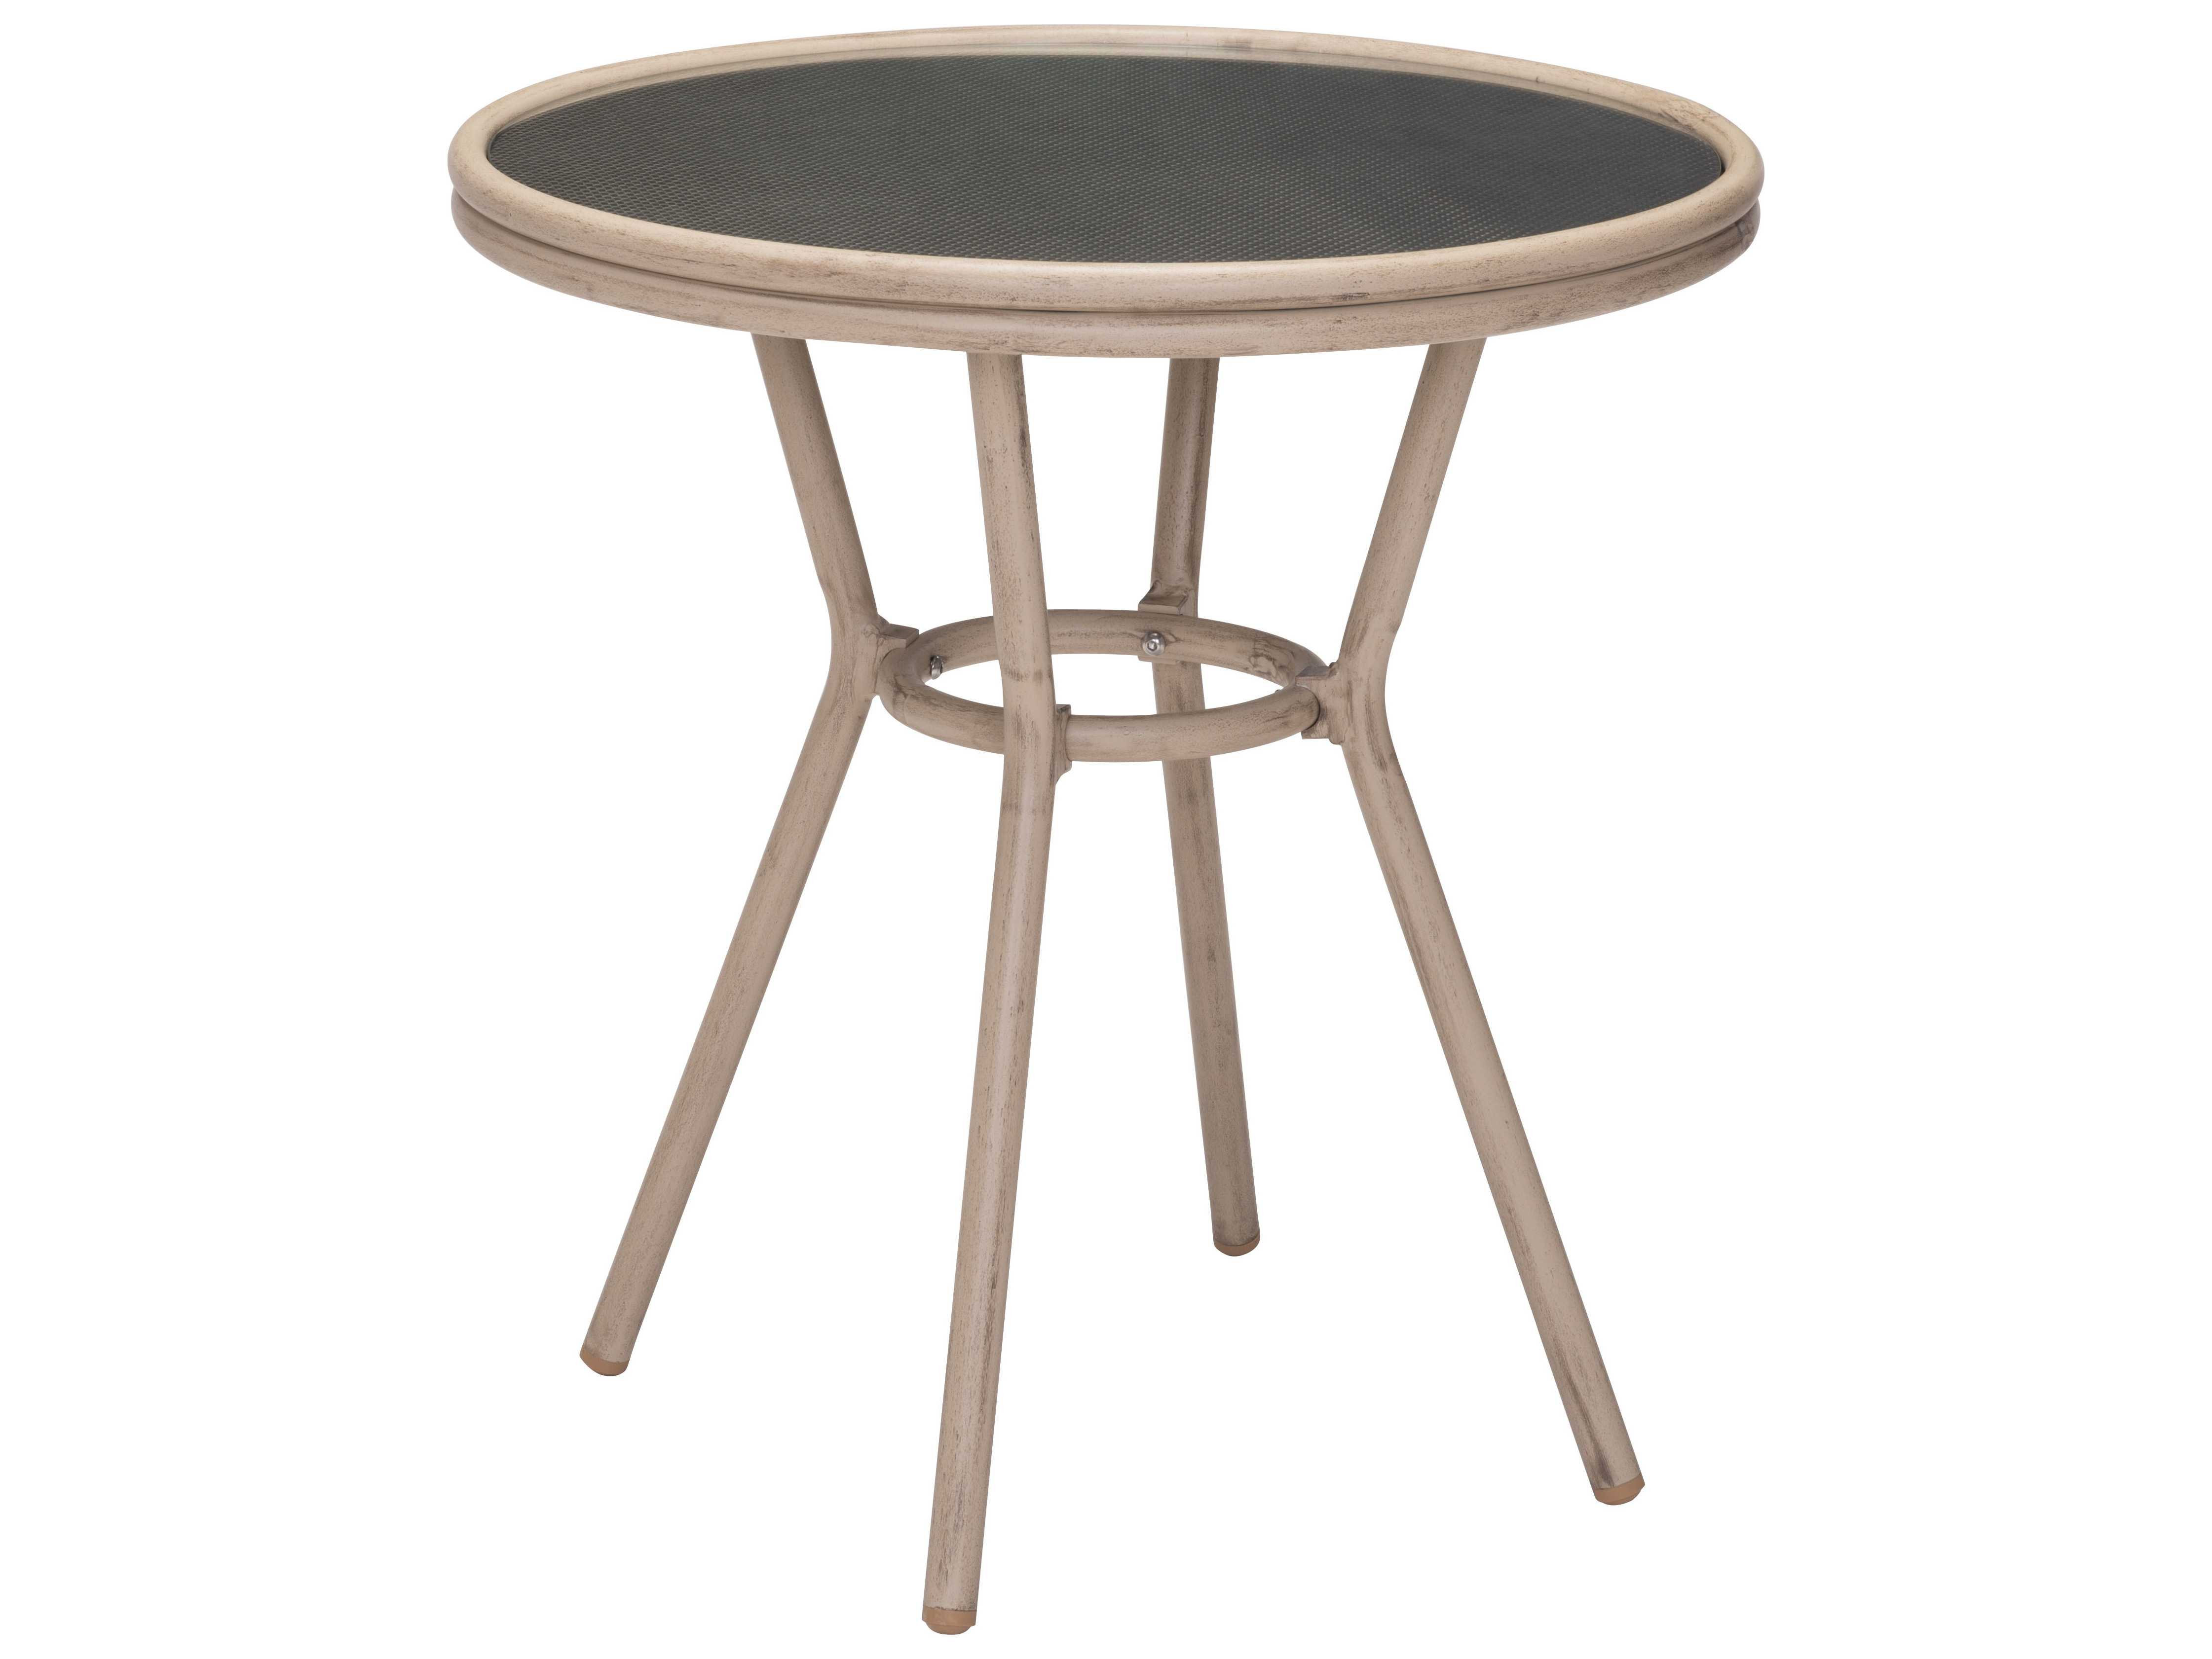 zuo outdoor marseilles aluminum round glass top bistro table dar in brown 703808. Black Bedroom Furniture Sets. Home Design Ideas